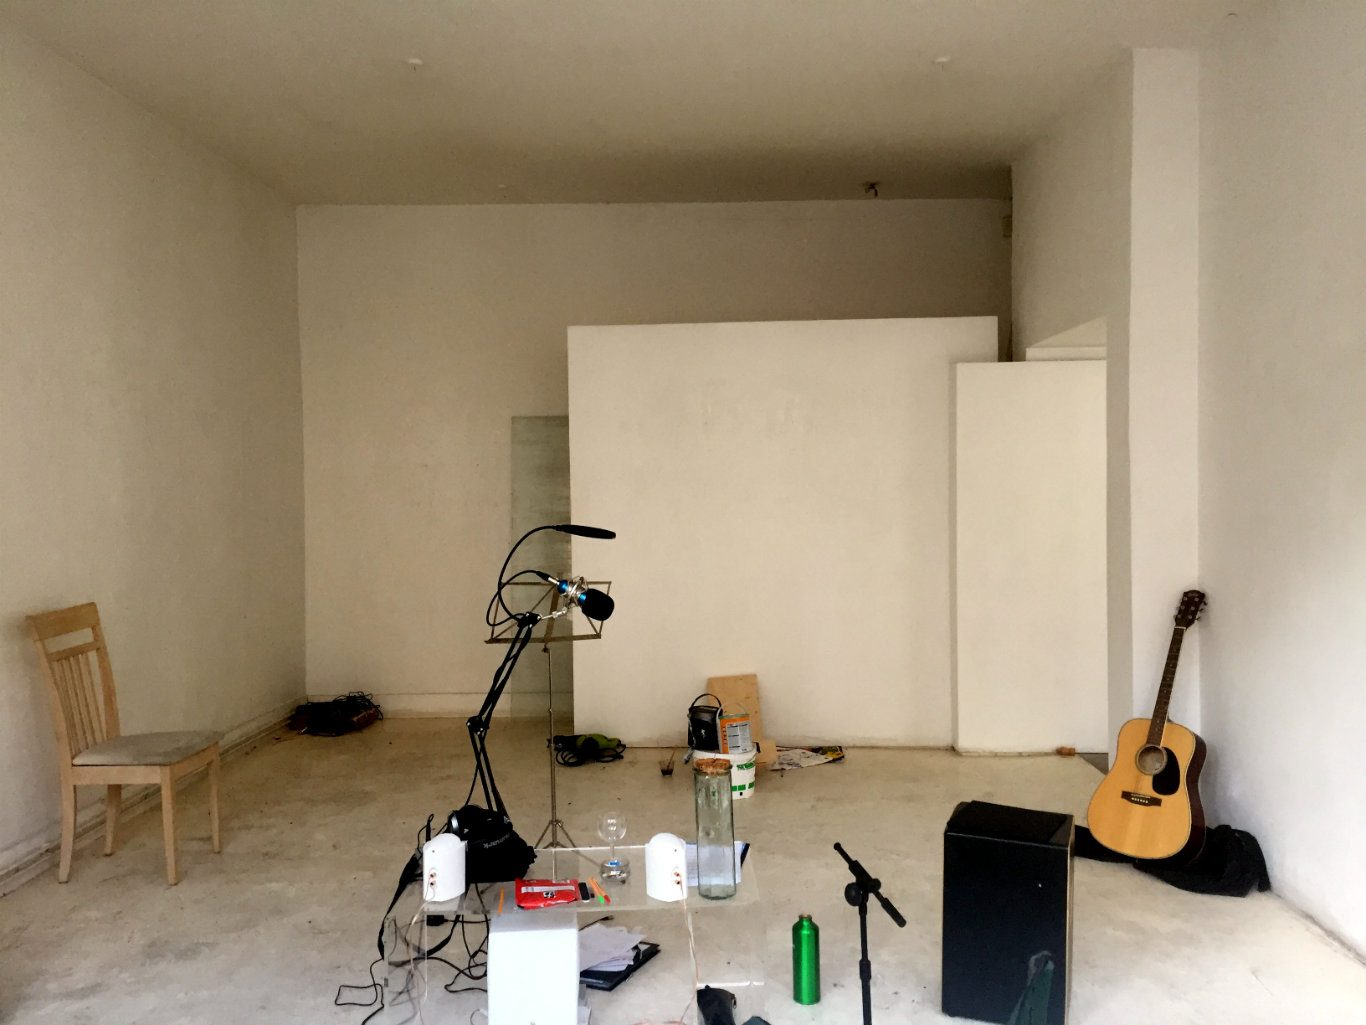 The former gallery is being squatted by musicians and artists. Photo: LBTM